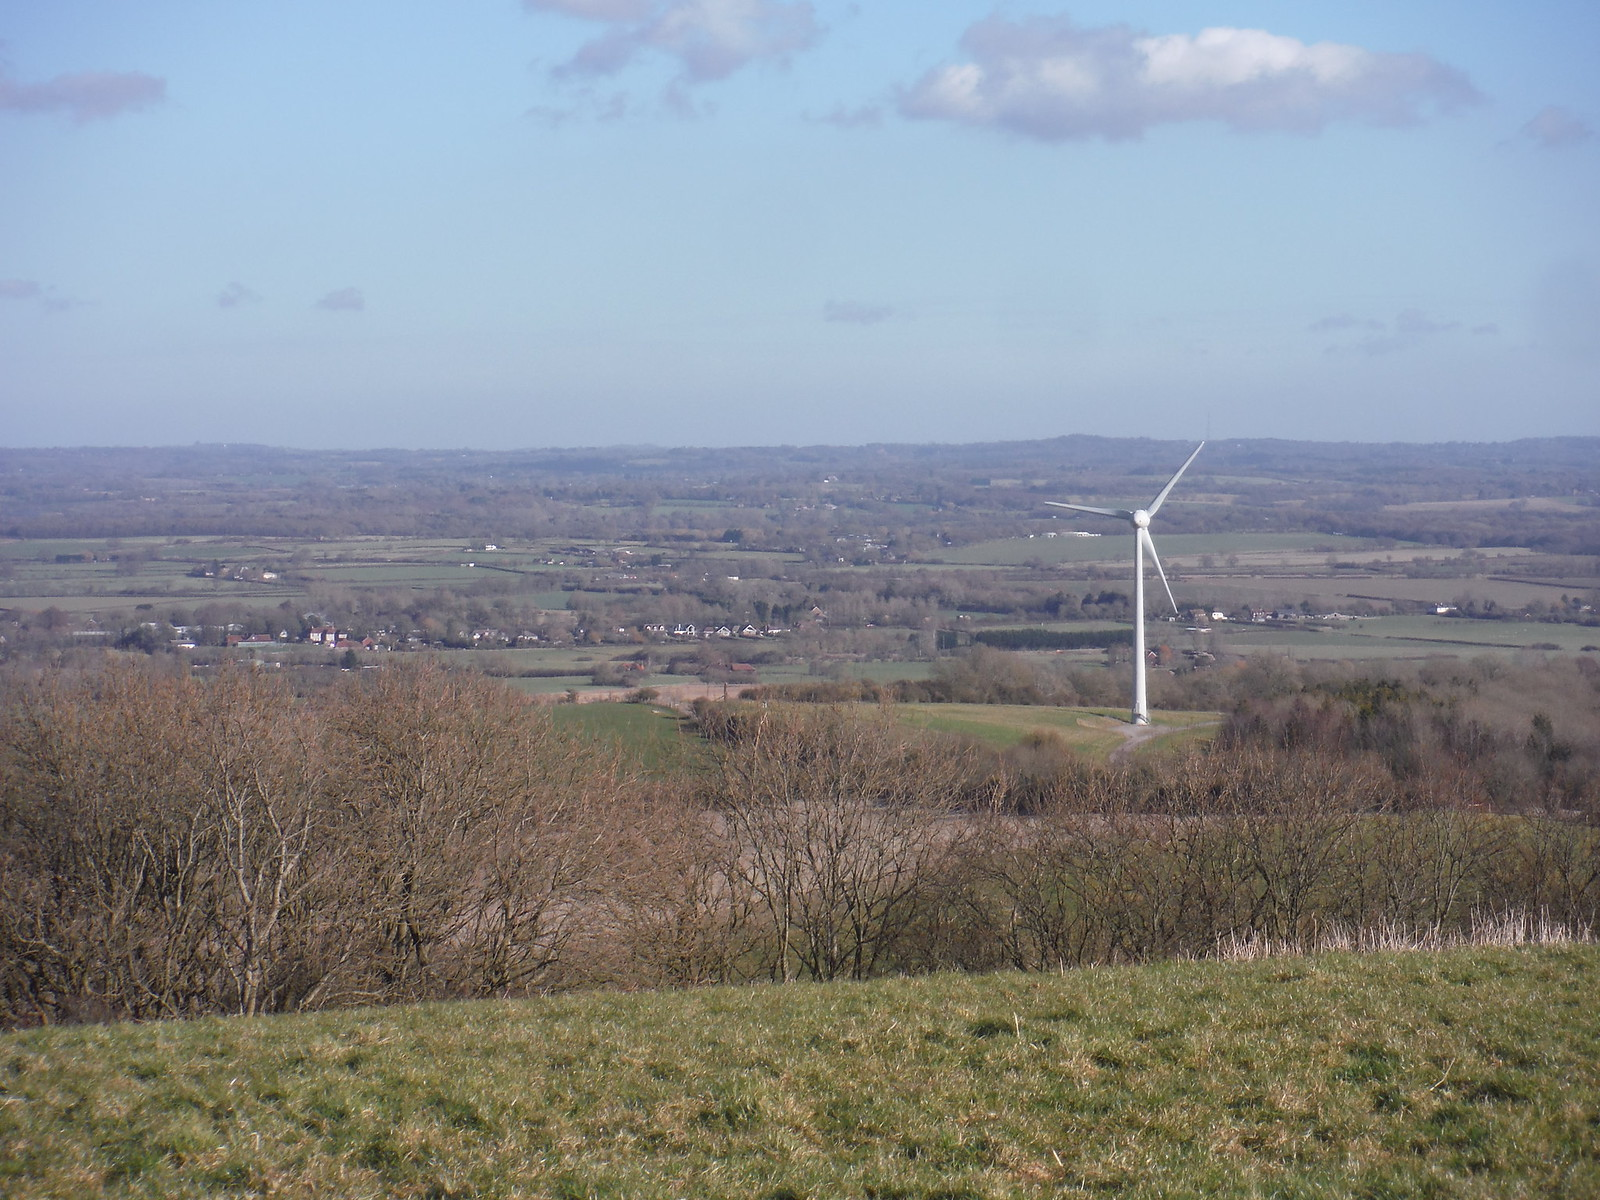 Glyndebourne Wind Turbine SWC Walk 181 - Lewes to Seaford via West Firle